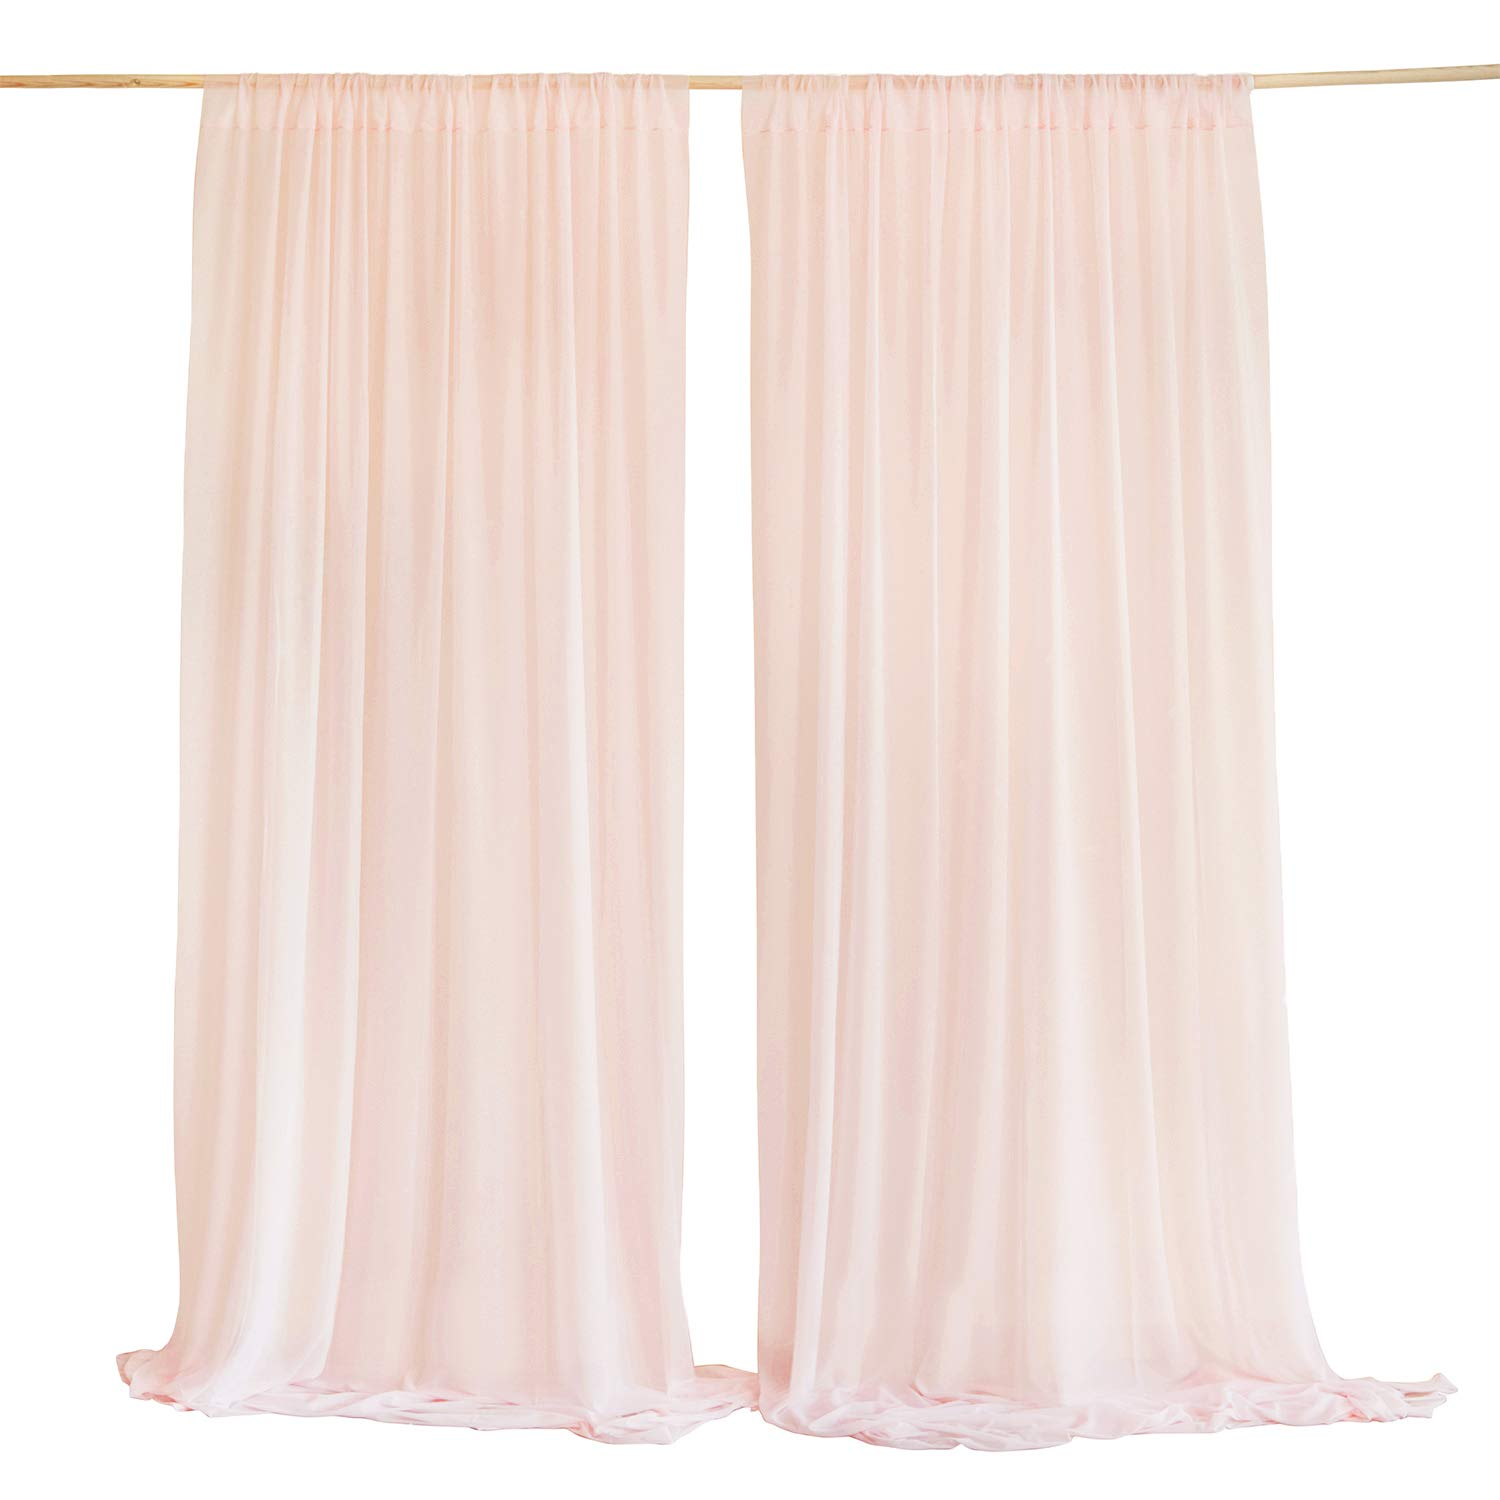 Ling S Moment Wrinkle Free Blush Sheer Backdrop Curtains10ft X 10ft Chiffon Fabric Drapes Wedding Party Baby Shower Decoration